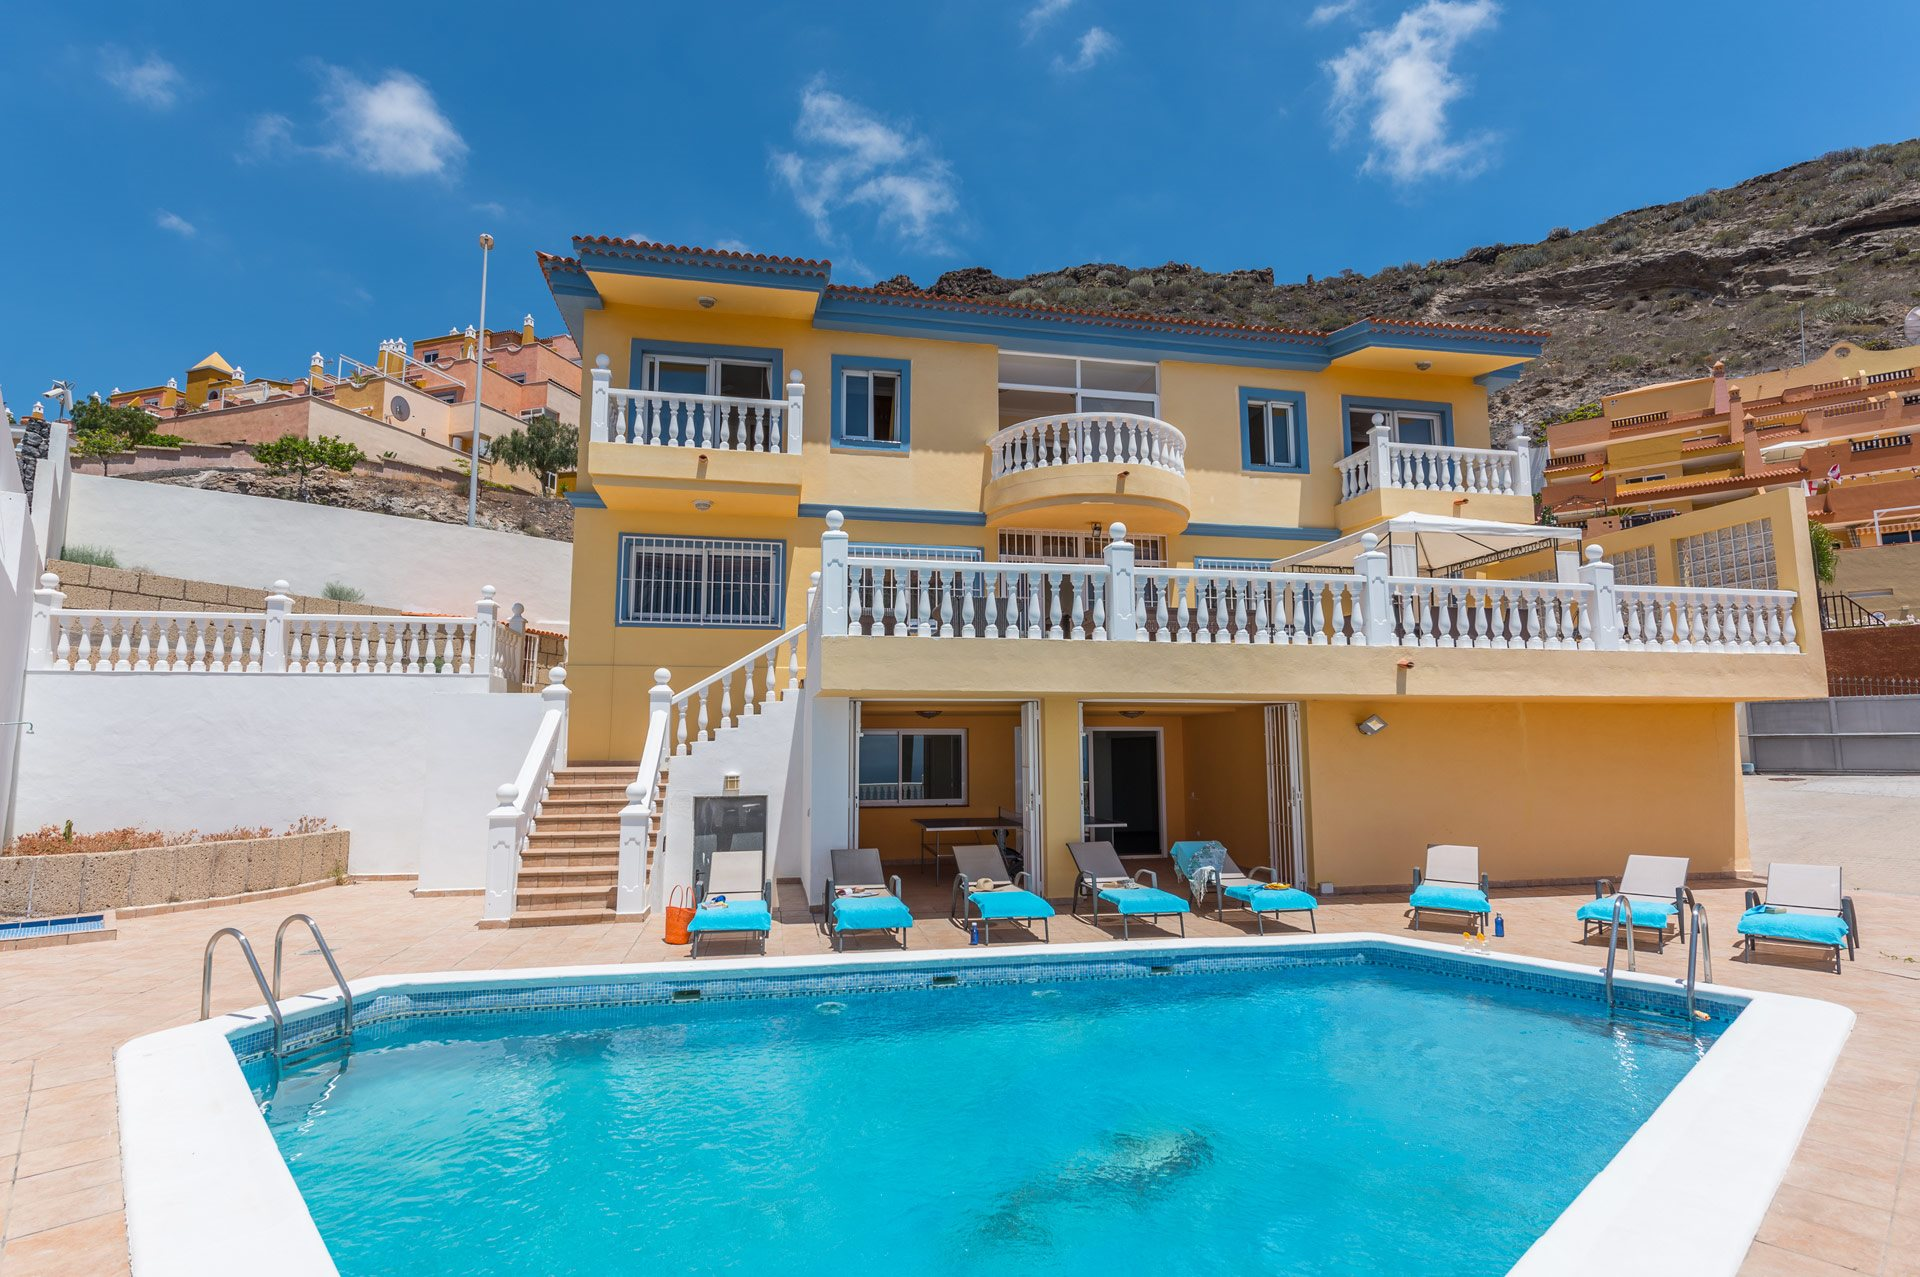 Tenerife  Holiday Rental  Luxury Villa  from €45 pppn – My World Property